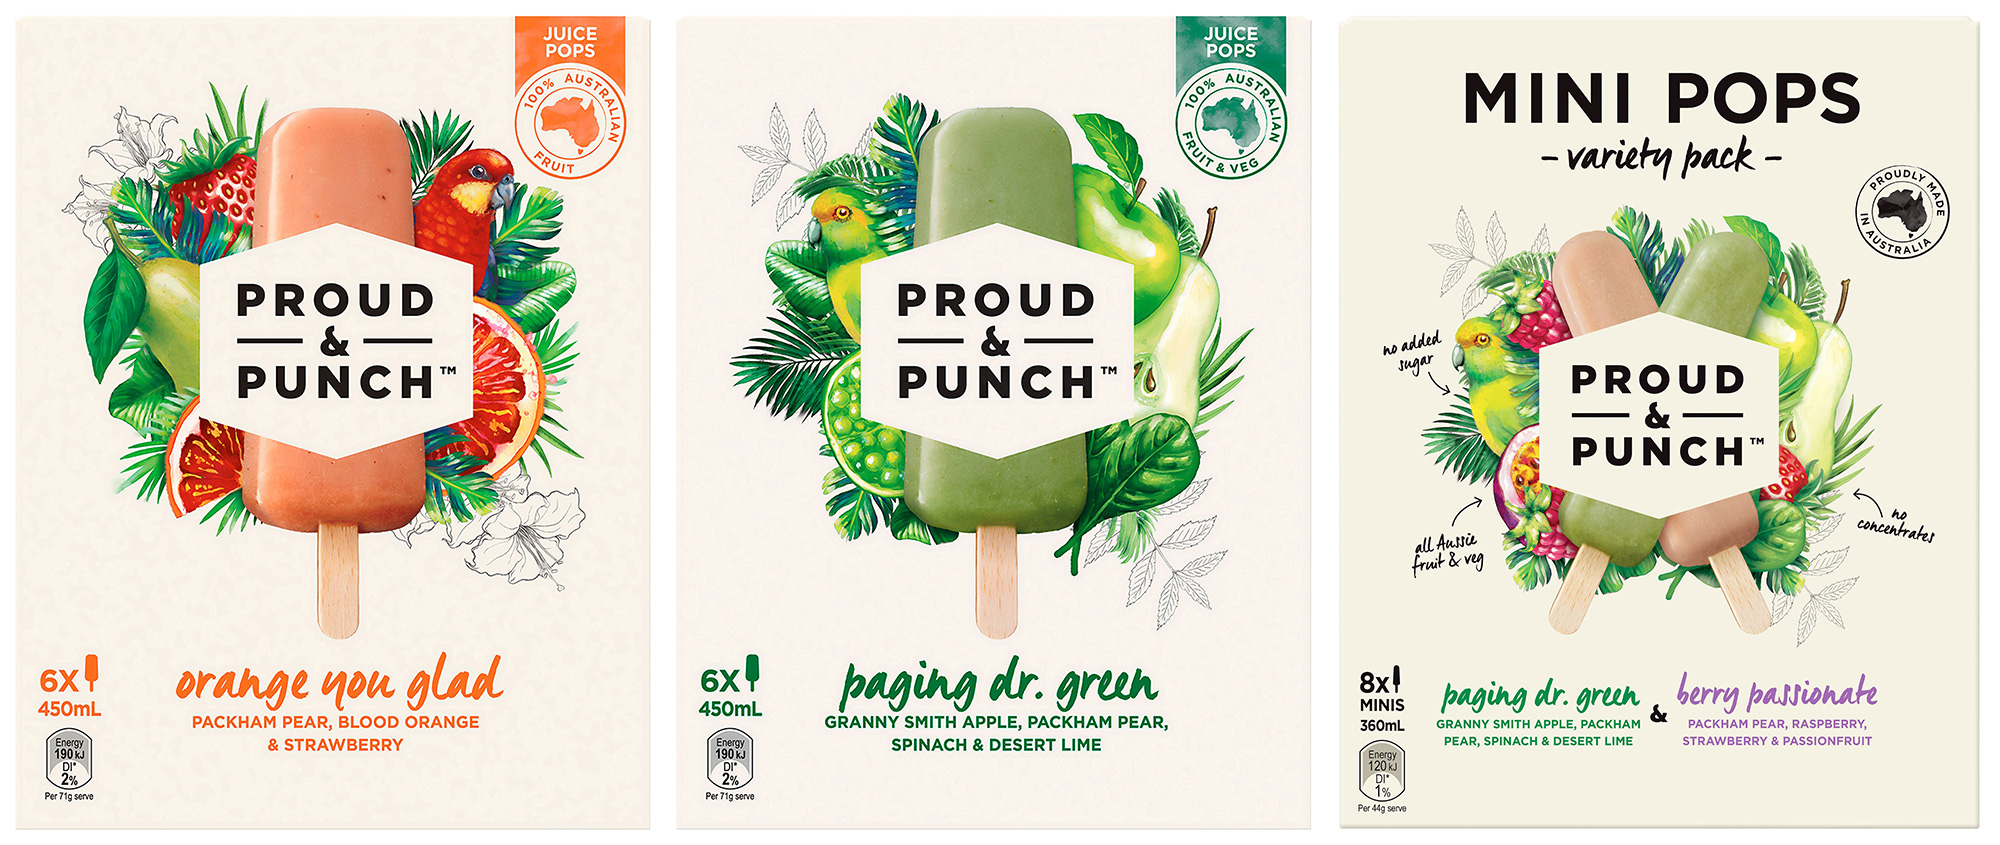 Proud Punch Juice Pops, FMCG, Food styling, packaging